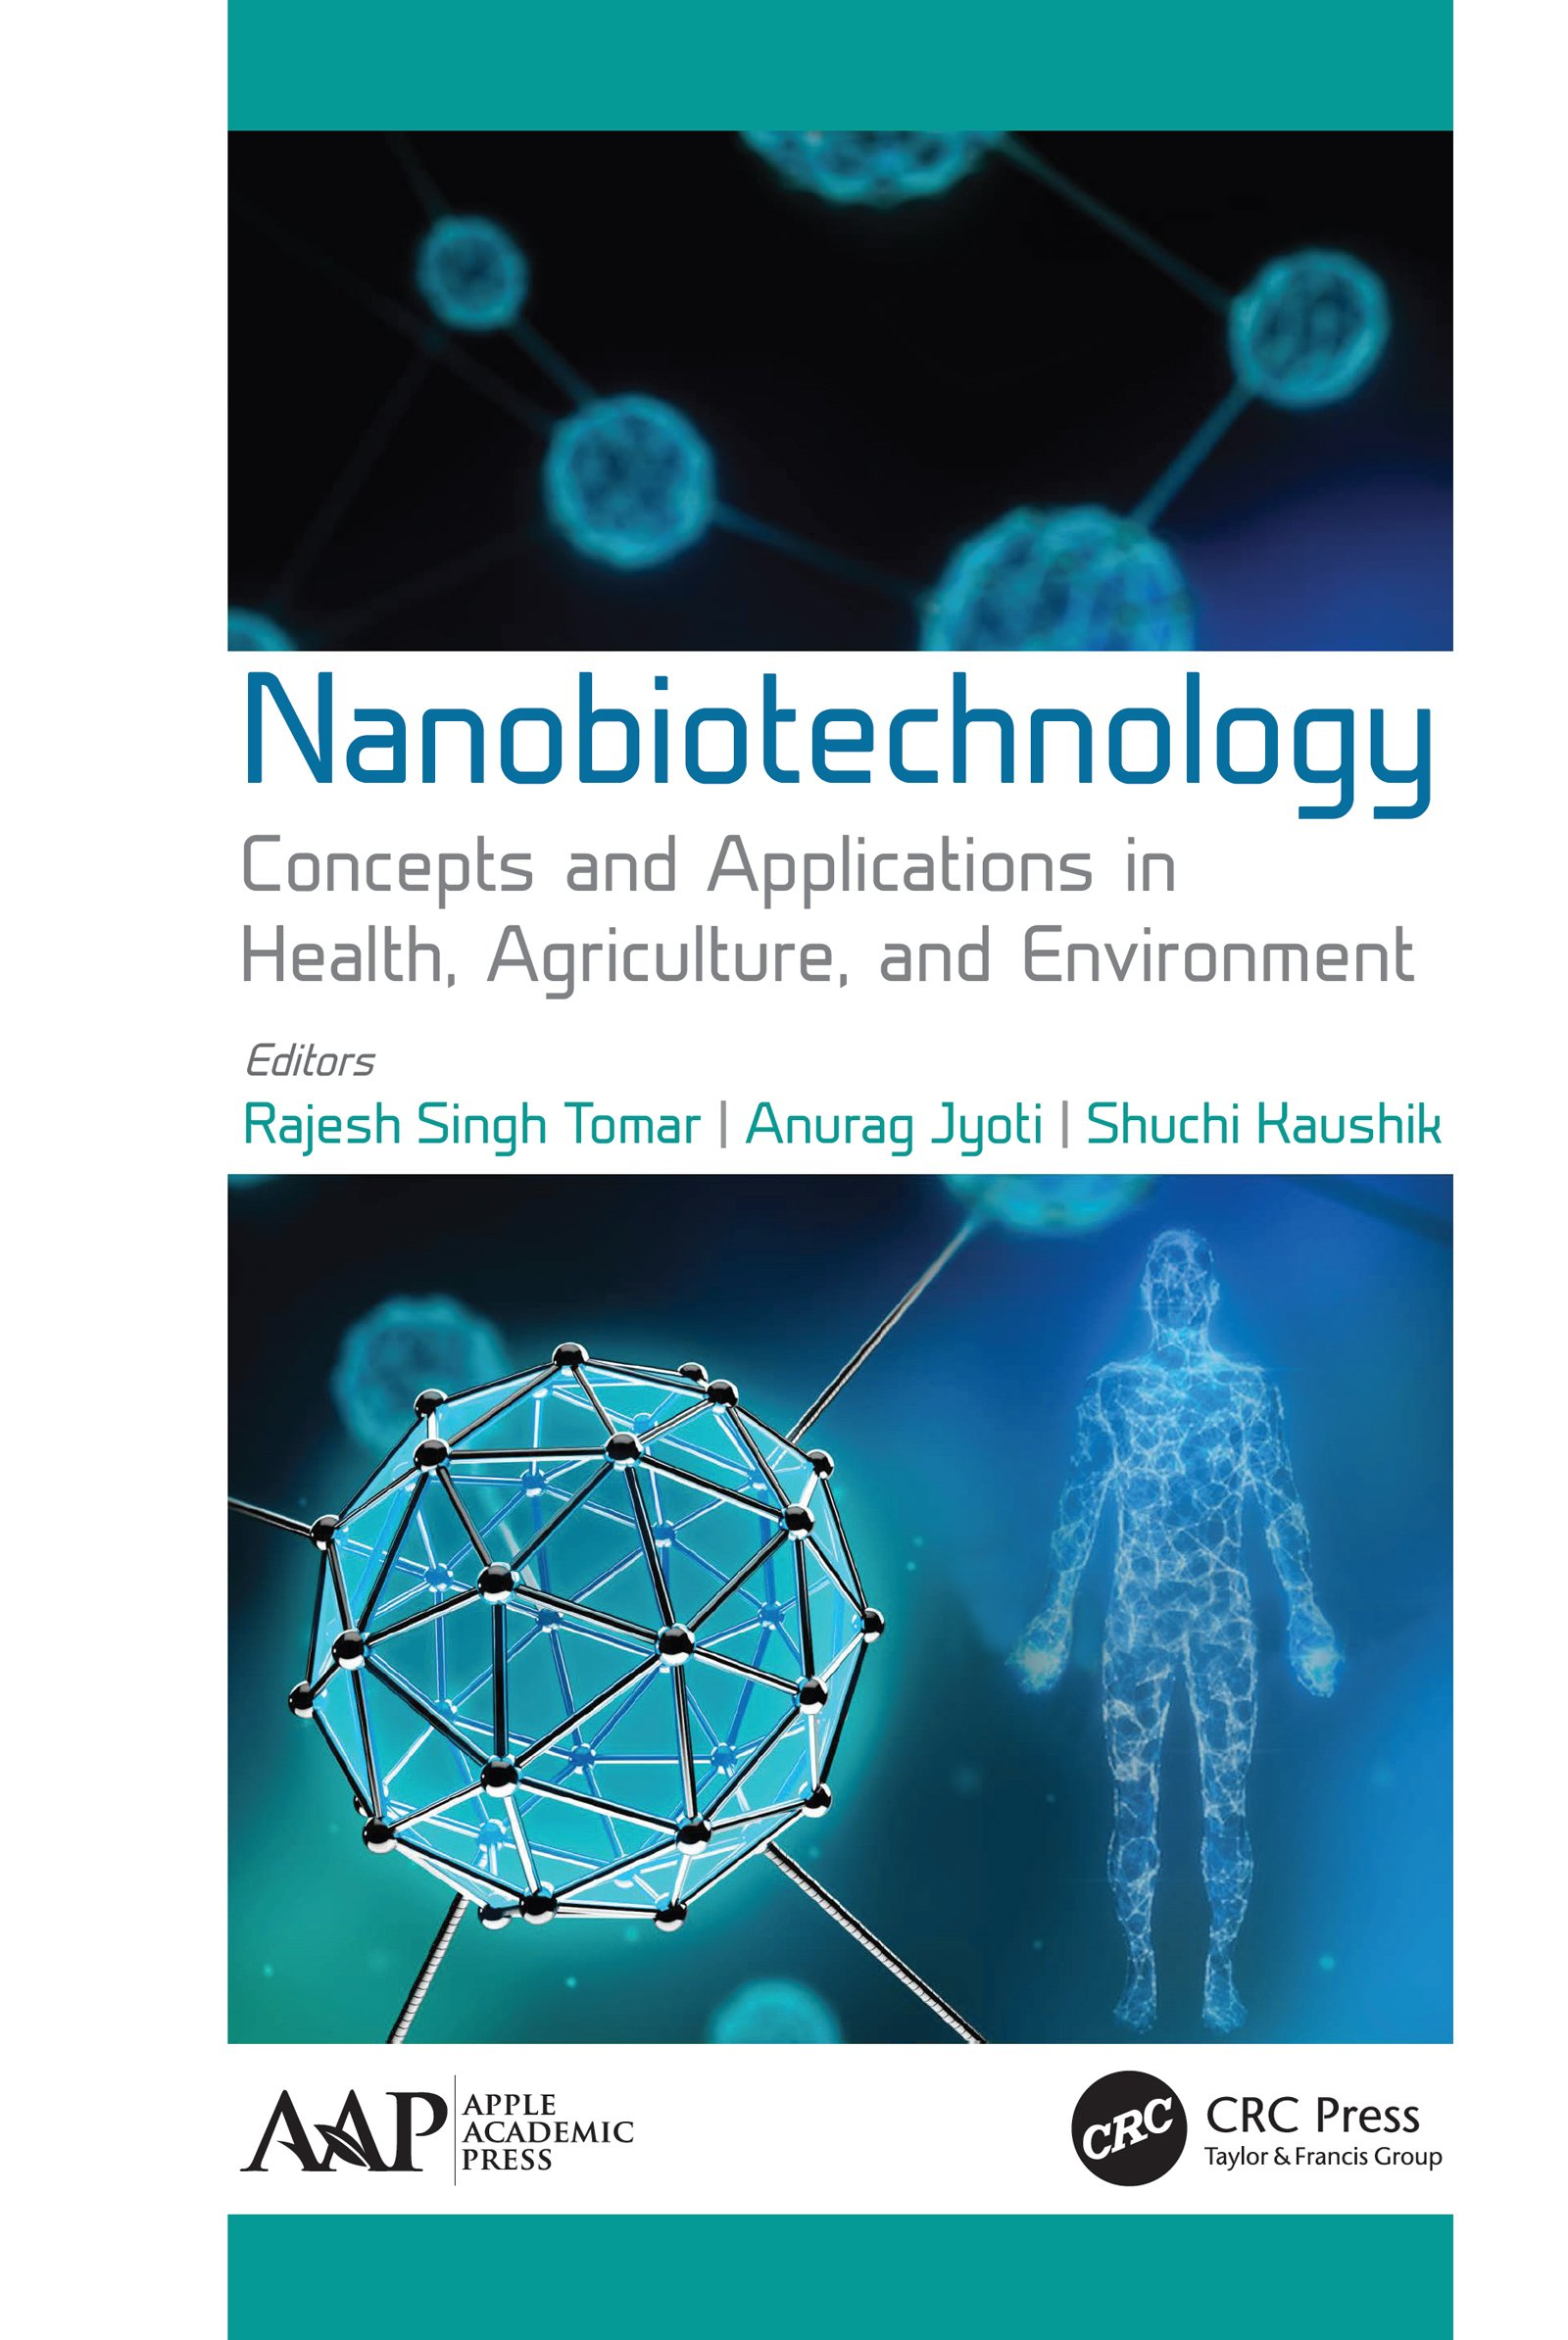 Nanobiotechnology: Concepts and Applications in Health, Agriculture, and Environment book cover